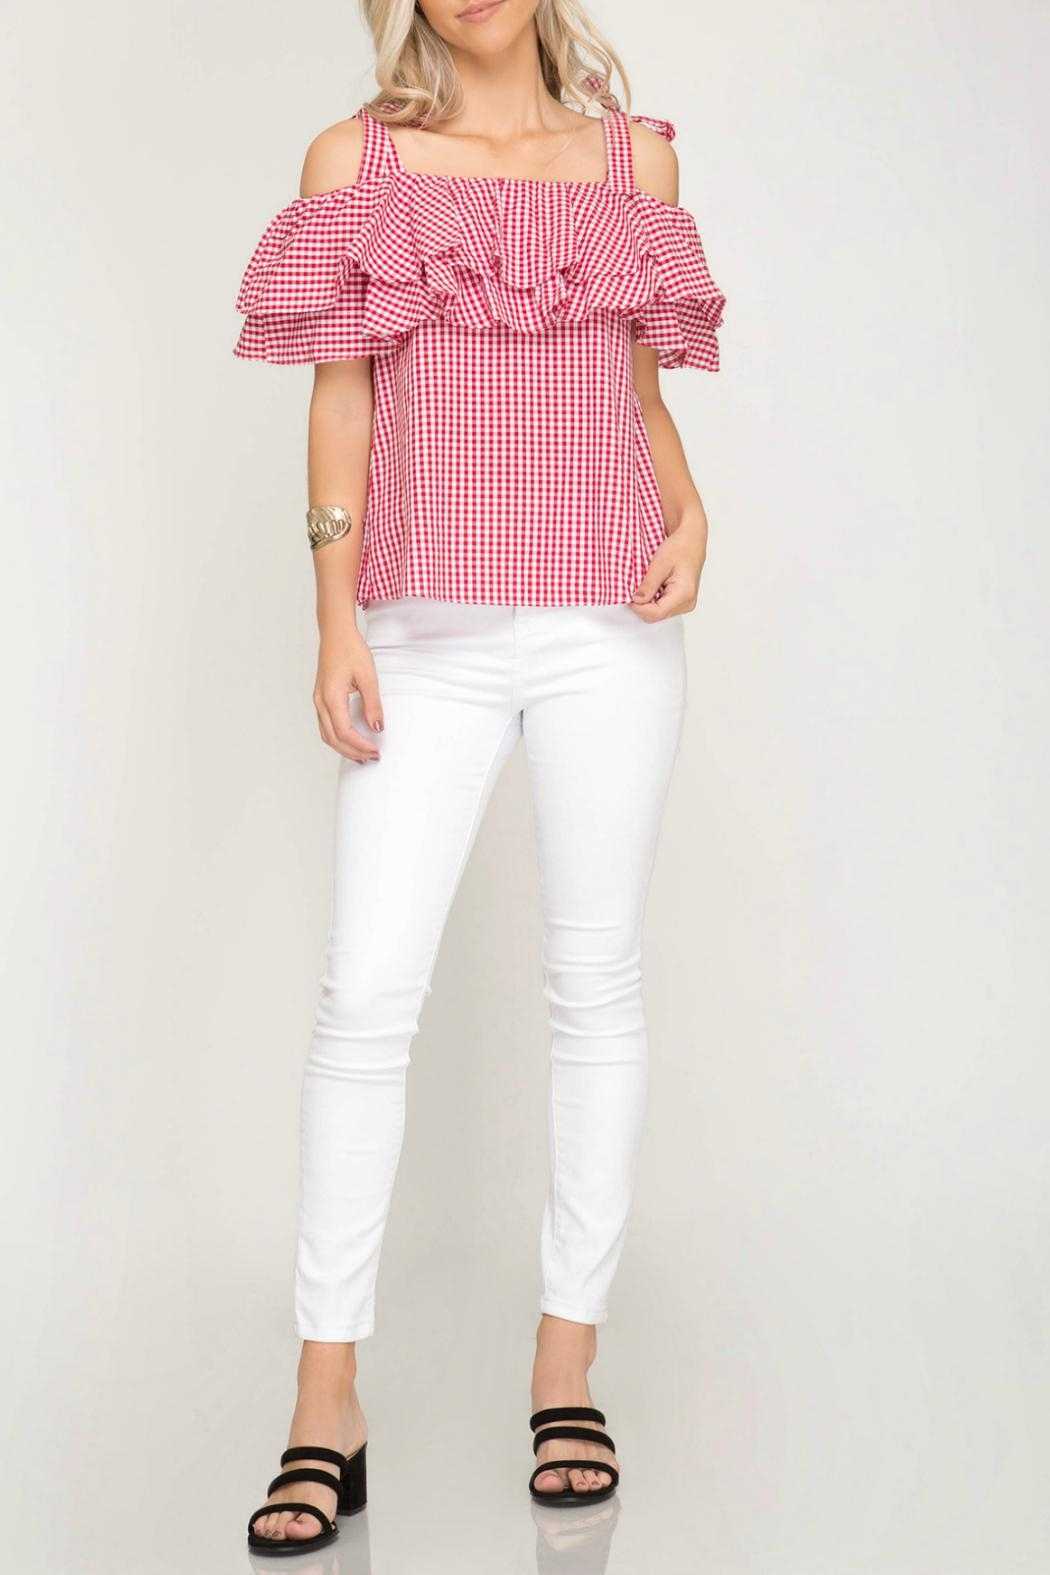 She + Sky Gingham Print Top - Back Cropped Image